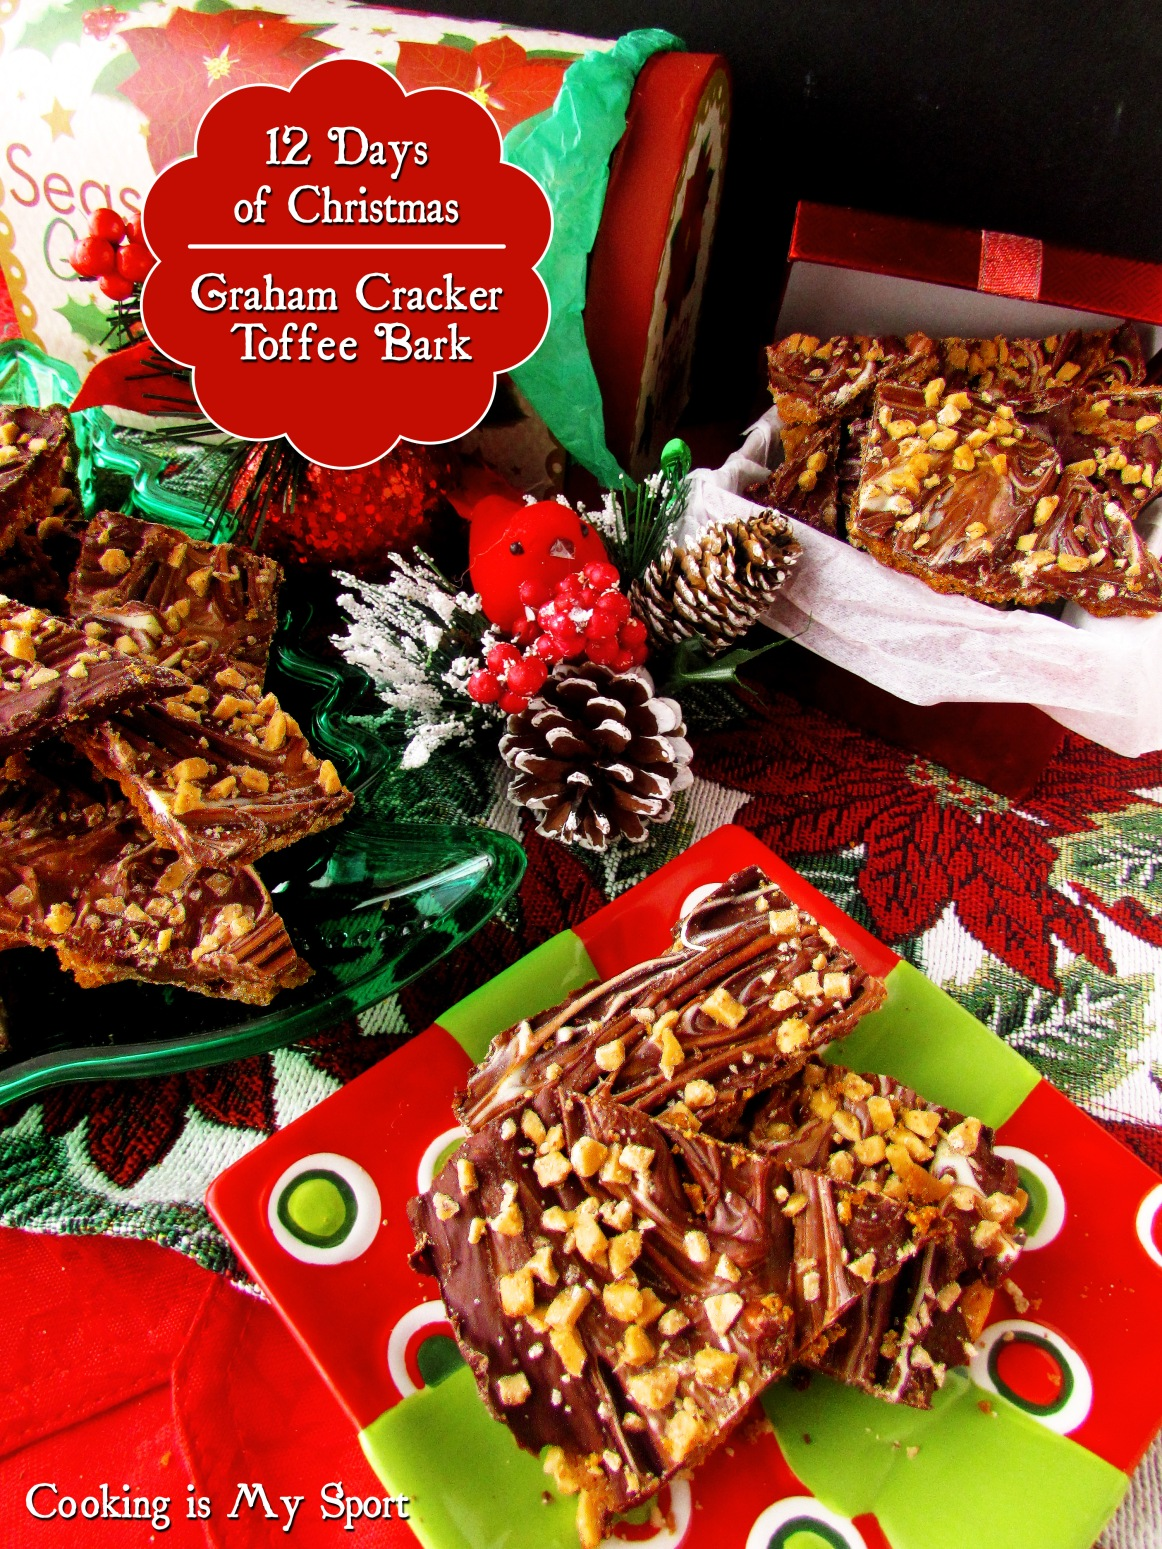 Graham Cracker Toffee Bark5